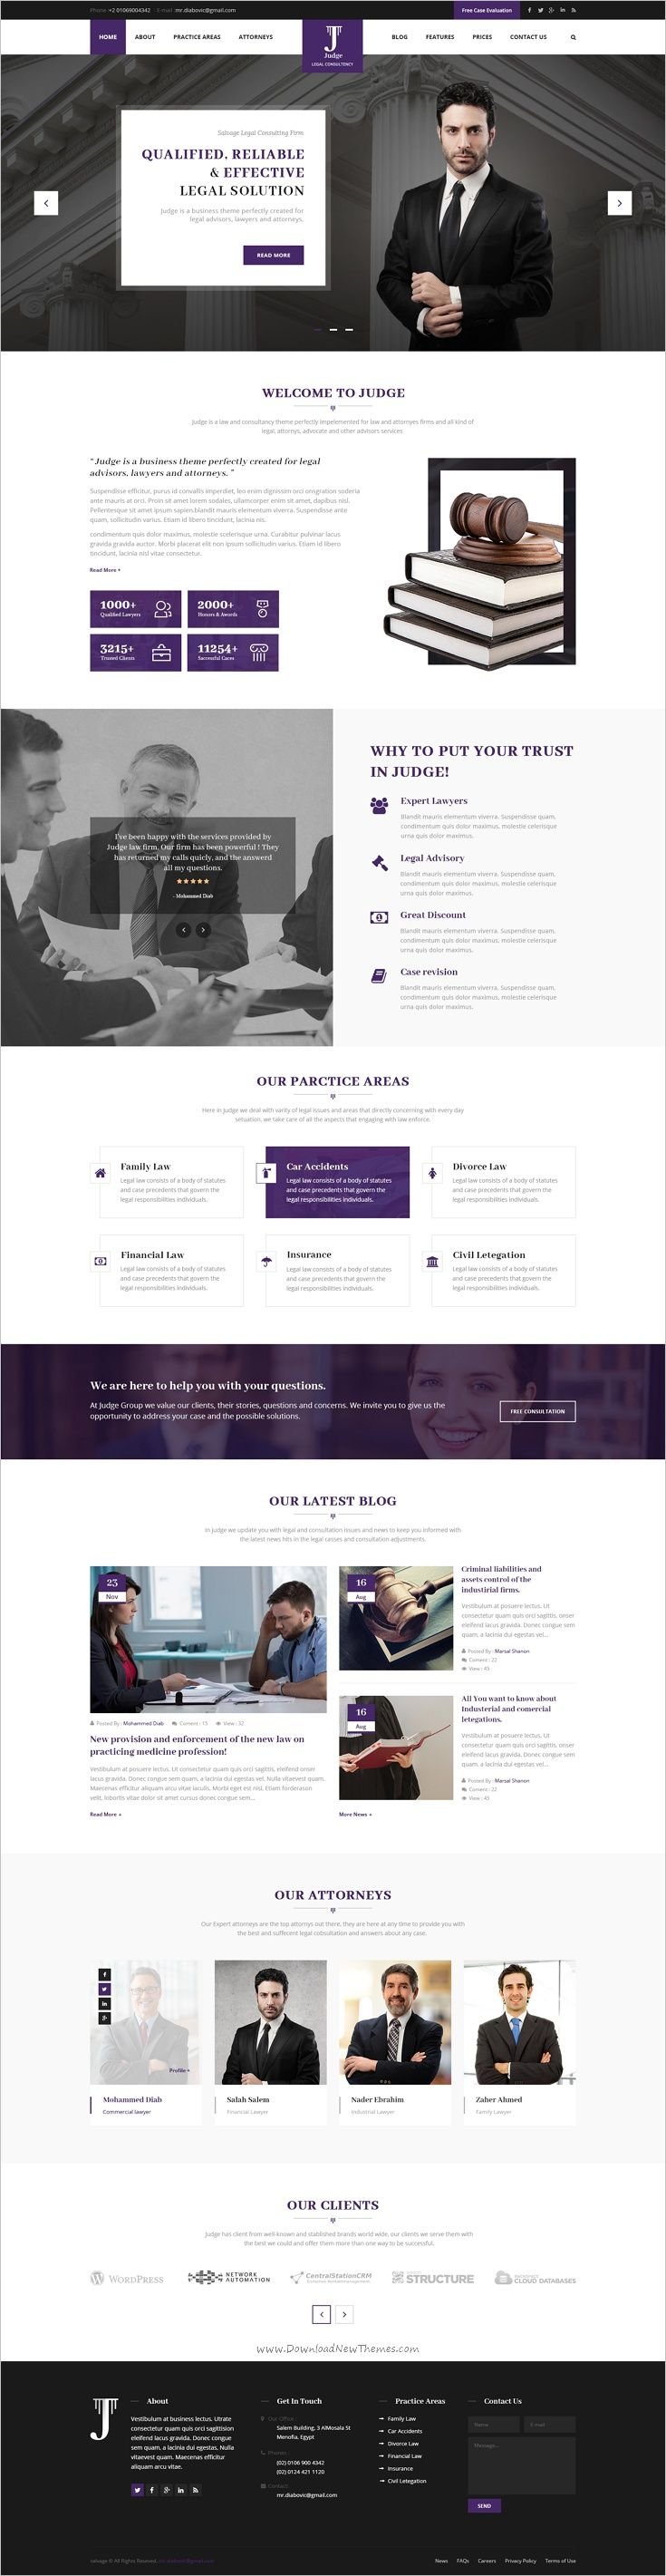 Judge is a clean and modern #law #firm #PSD template, which perfectly suited for #webdev Law Firm, Law Advisers, Legal Officers, Legal Advisers, Legal offices, Lawyers, Attorneys, Counsels, Advocates and other legal and law-related services website download now➩   https://themeforest.net/item/judge-psd-template-for-law-firm-and-lawyer/18944954?ref=Datasata